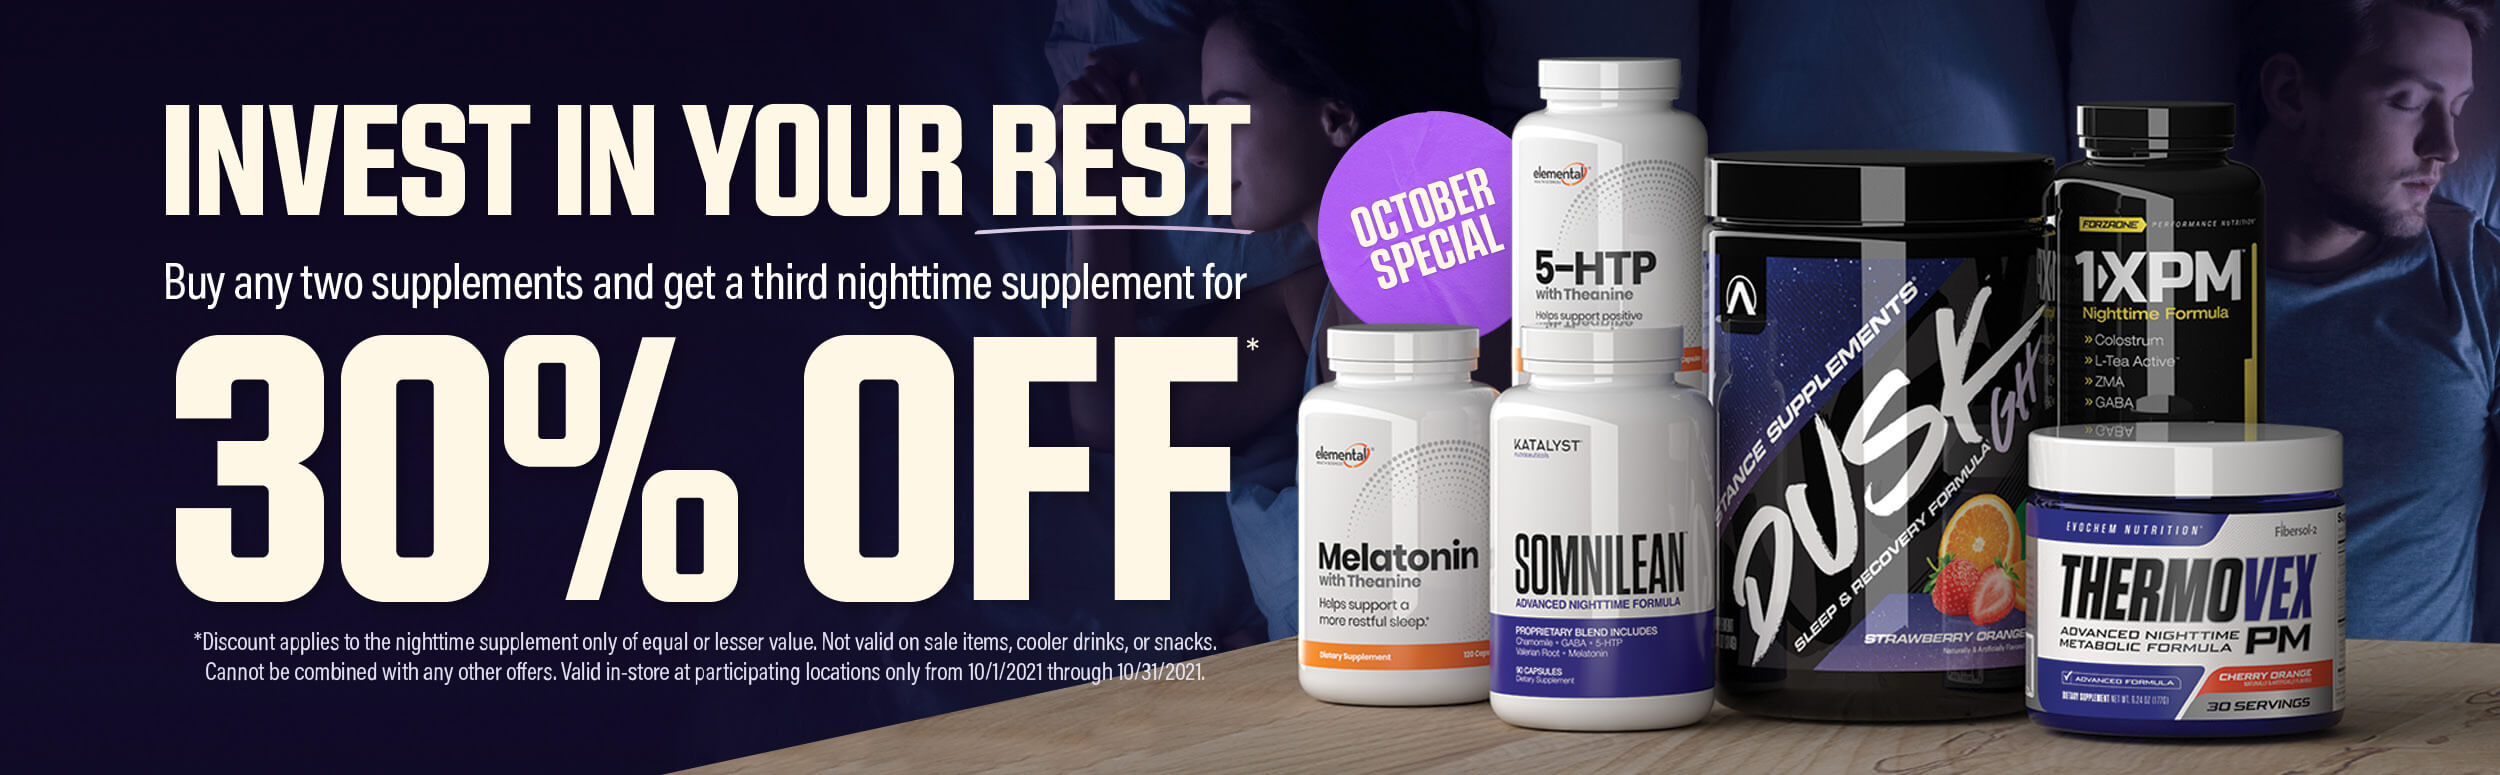 Invest in your rest, buy any two supplements and get a third nighttime supplement for 30% off.